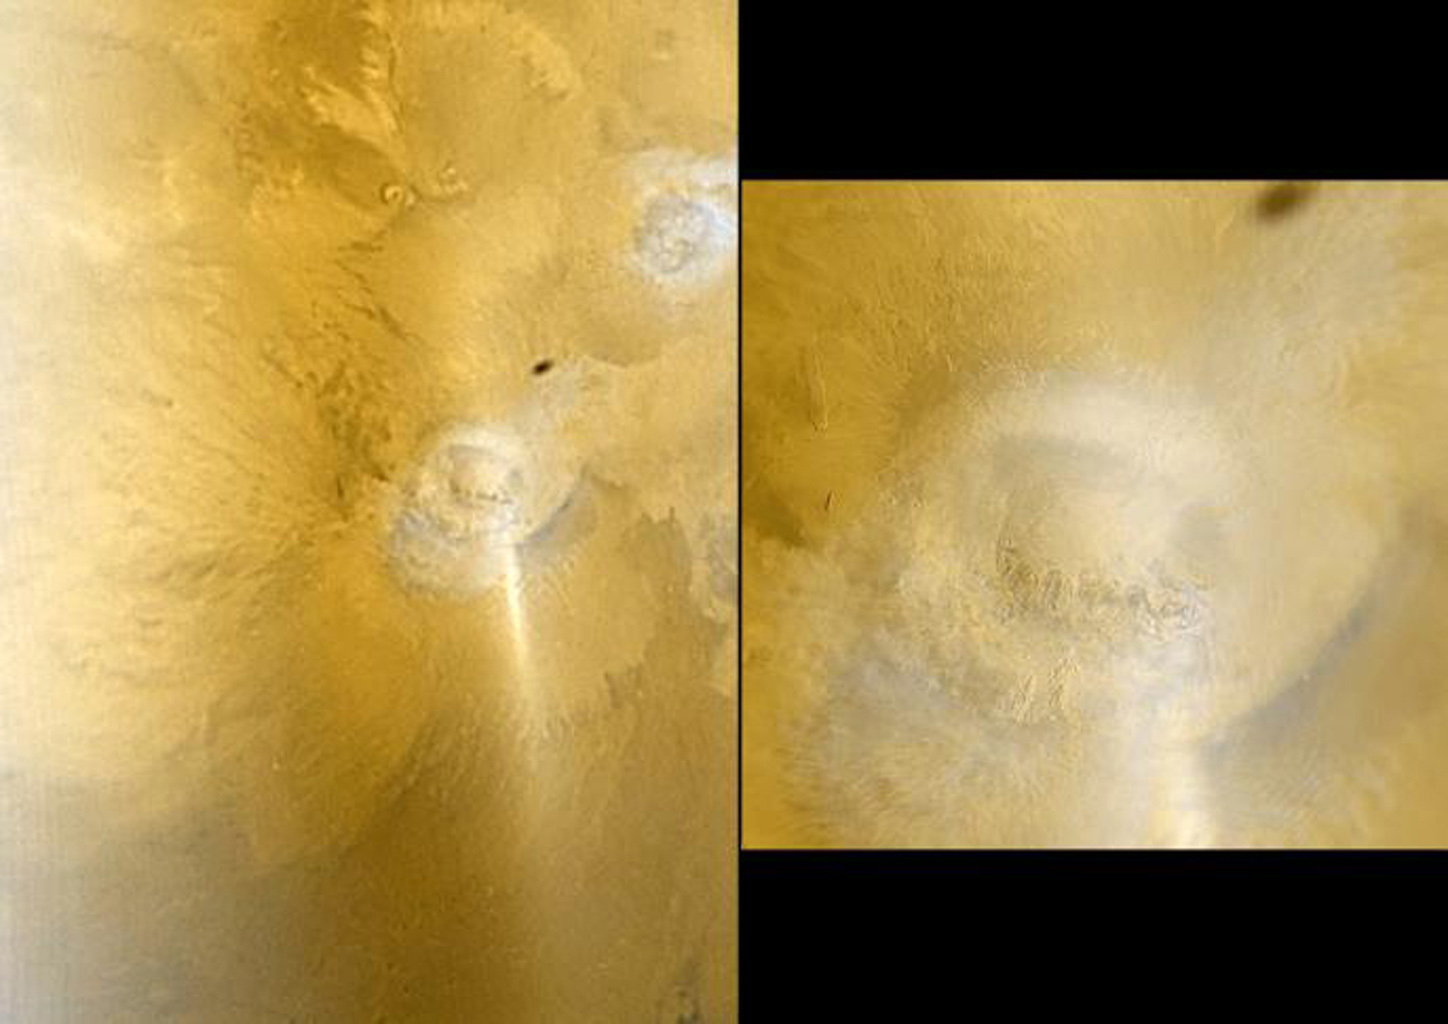 This pair of images color images from NASA's Mars Global Surveyor shows early autumn clouds over the Arsia Mons volcano, plus the shadow of the innermost of the two martain moons, Phobos.